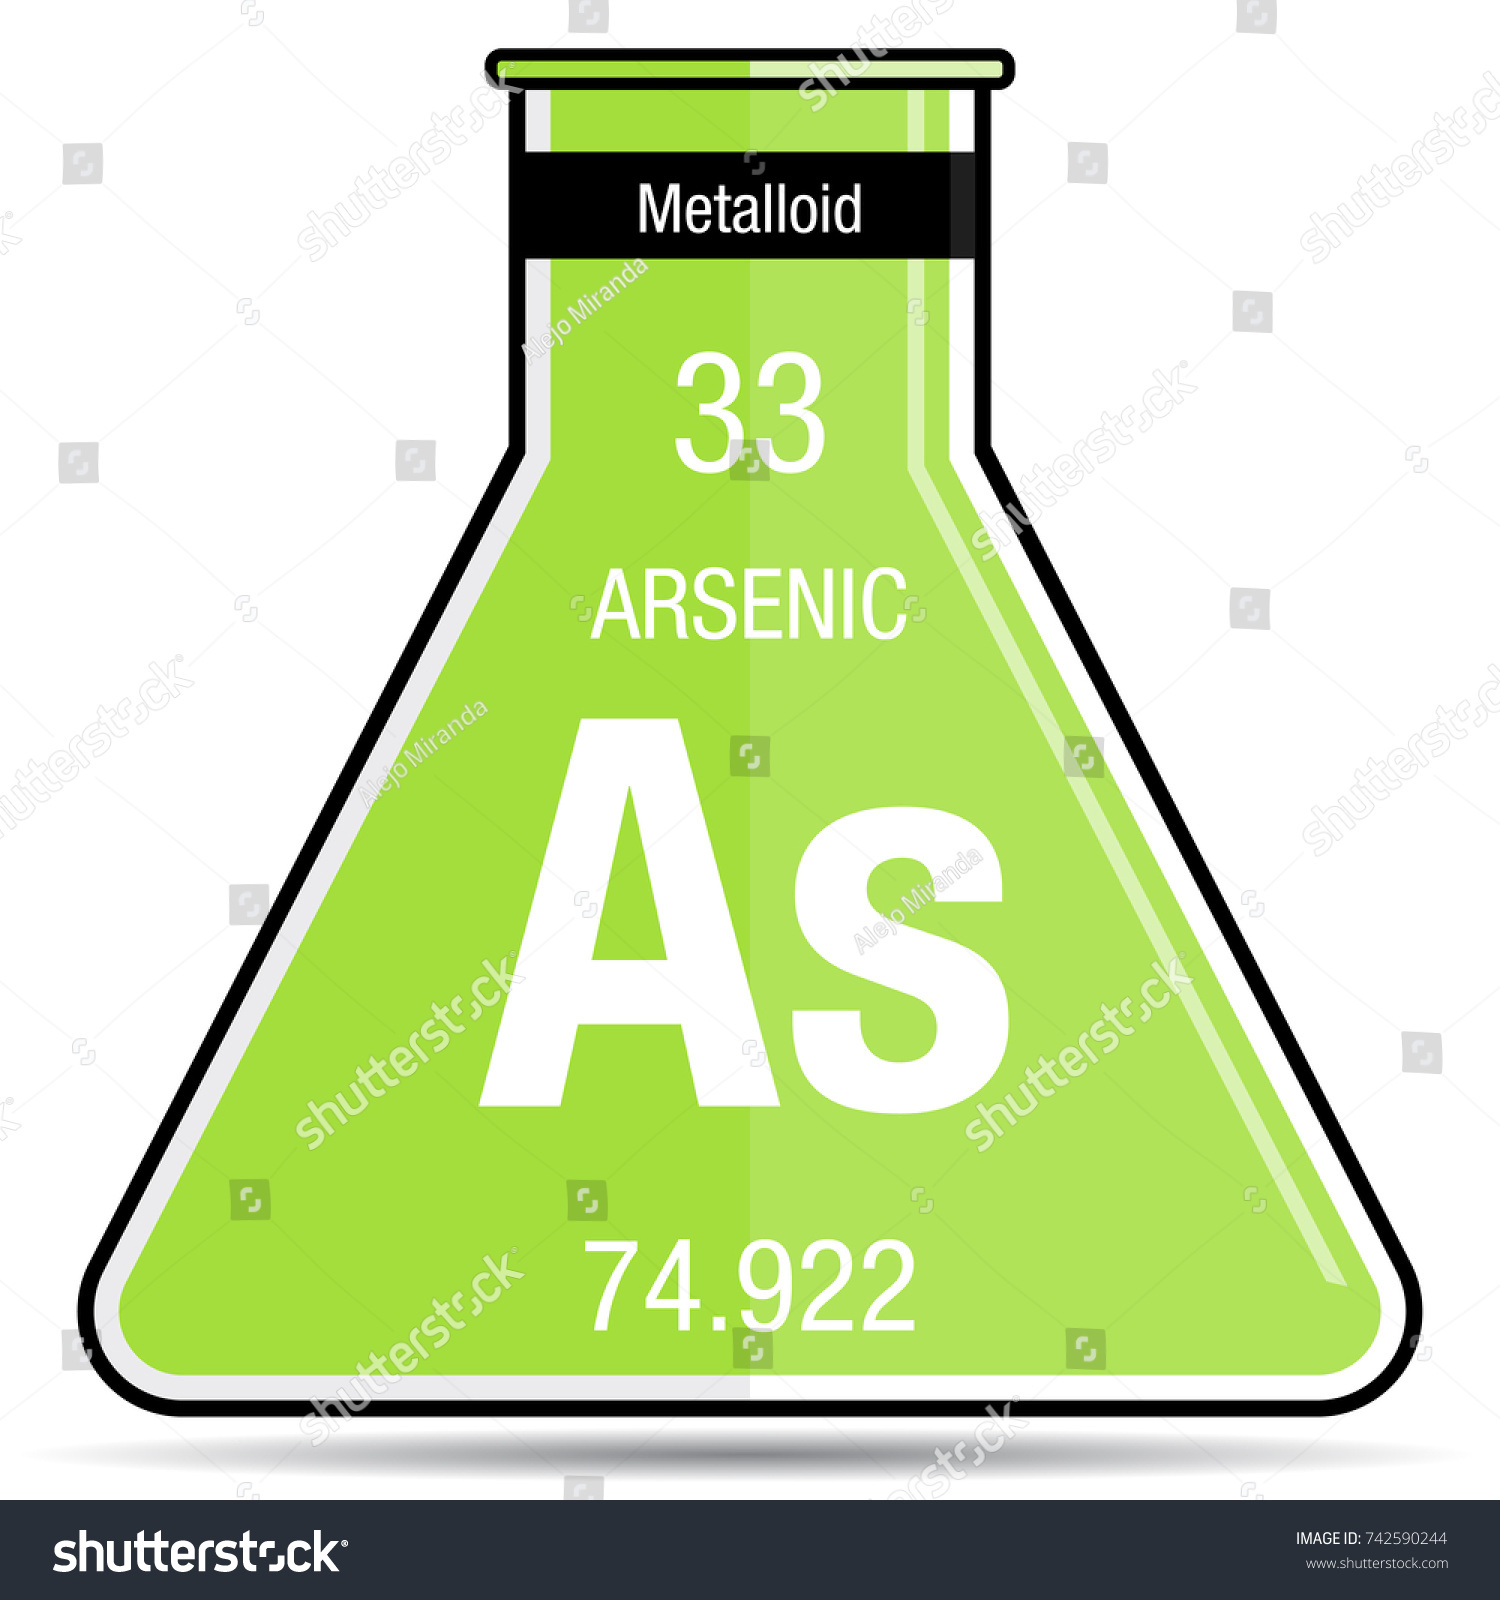 Arsenic symbol on chemical flask element stock vector 742590244 arsenic symbol on chemical flask element stock vector 742590244 shutterstock biocorpaavc Image collections